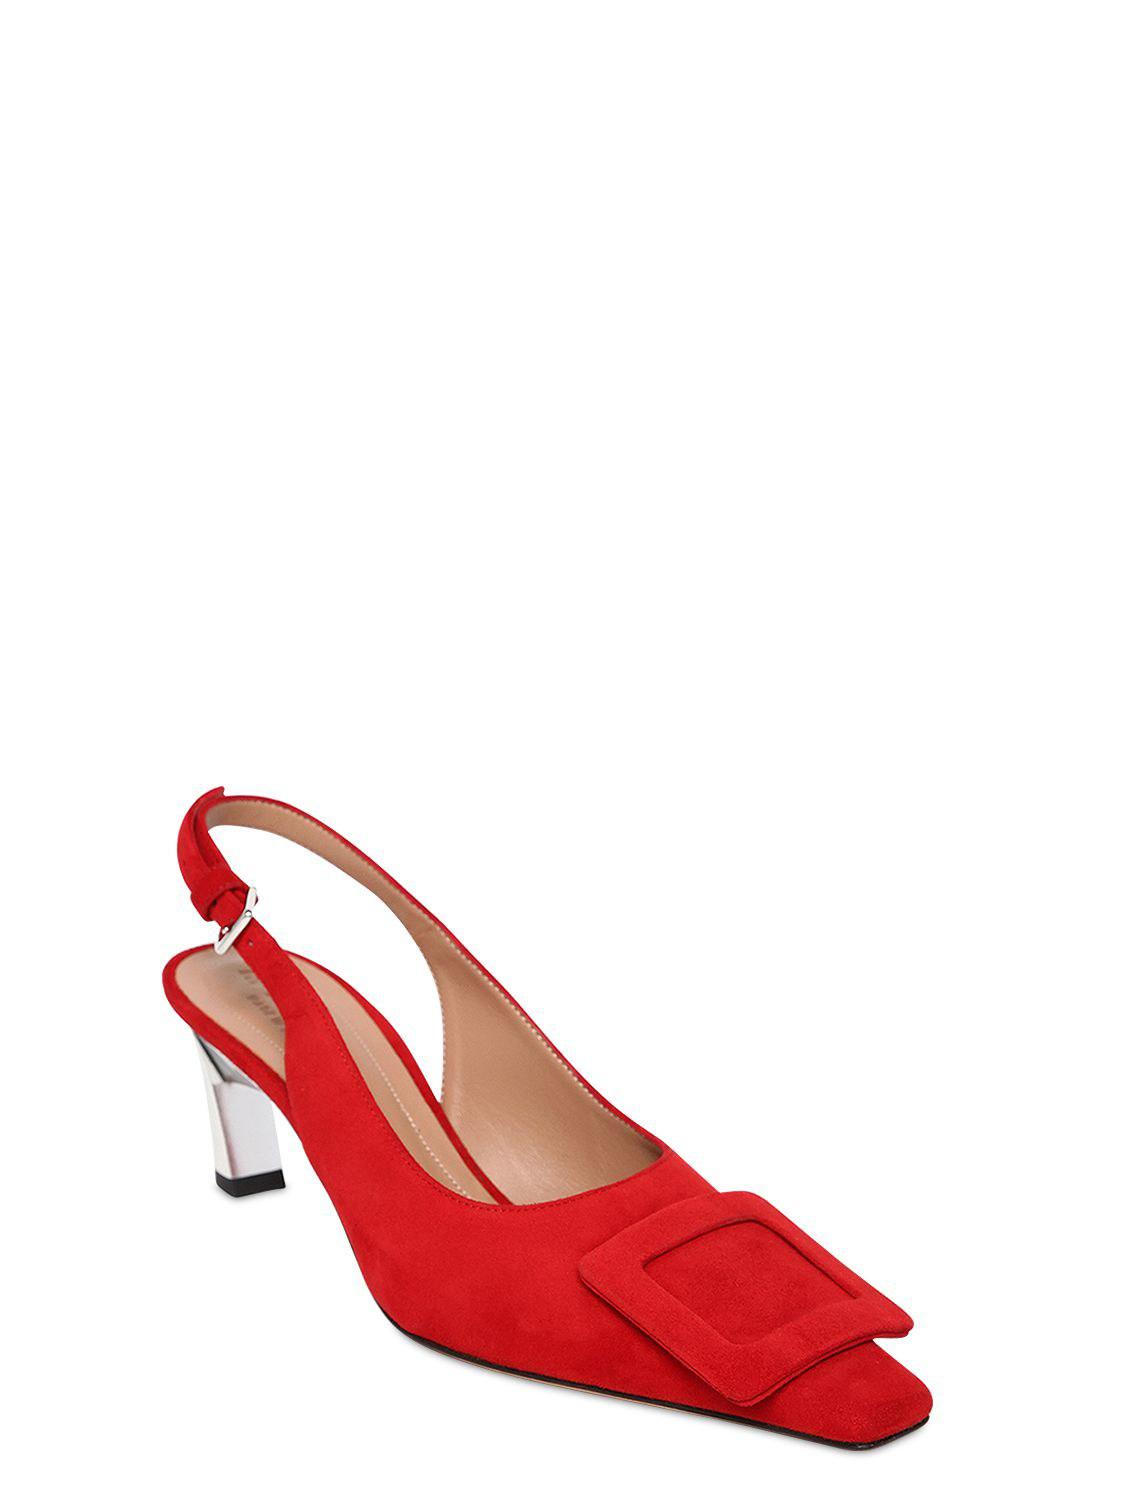 efdc0aee43ac Lyst - Marni Red Buckle 60 Suede Leather Slingback Pumps in Red